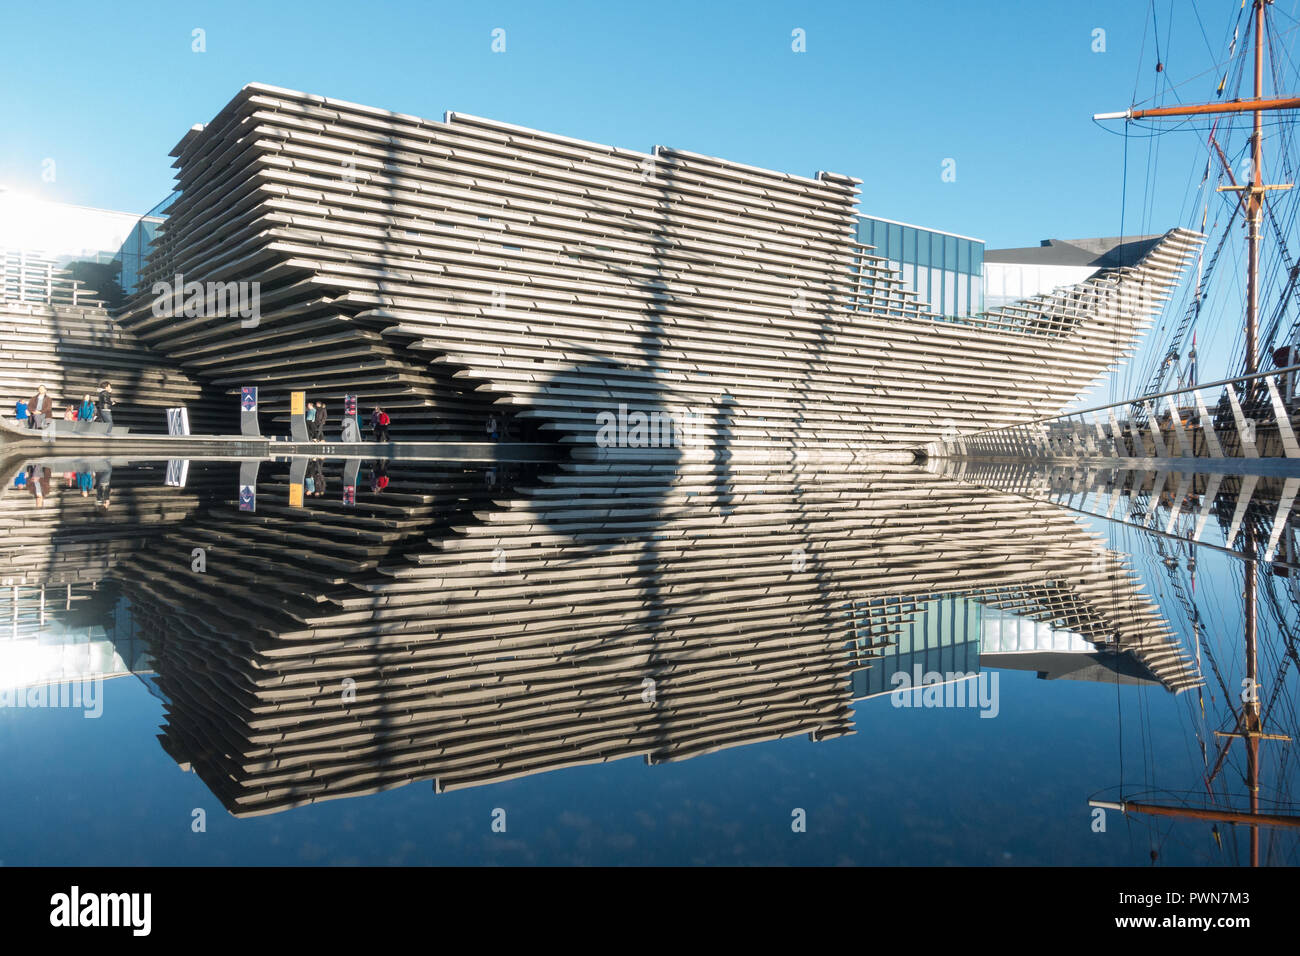 V&A Museum Dundee Scotland UK - Stock Image